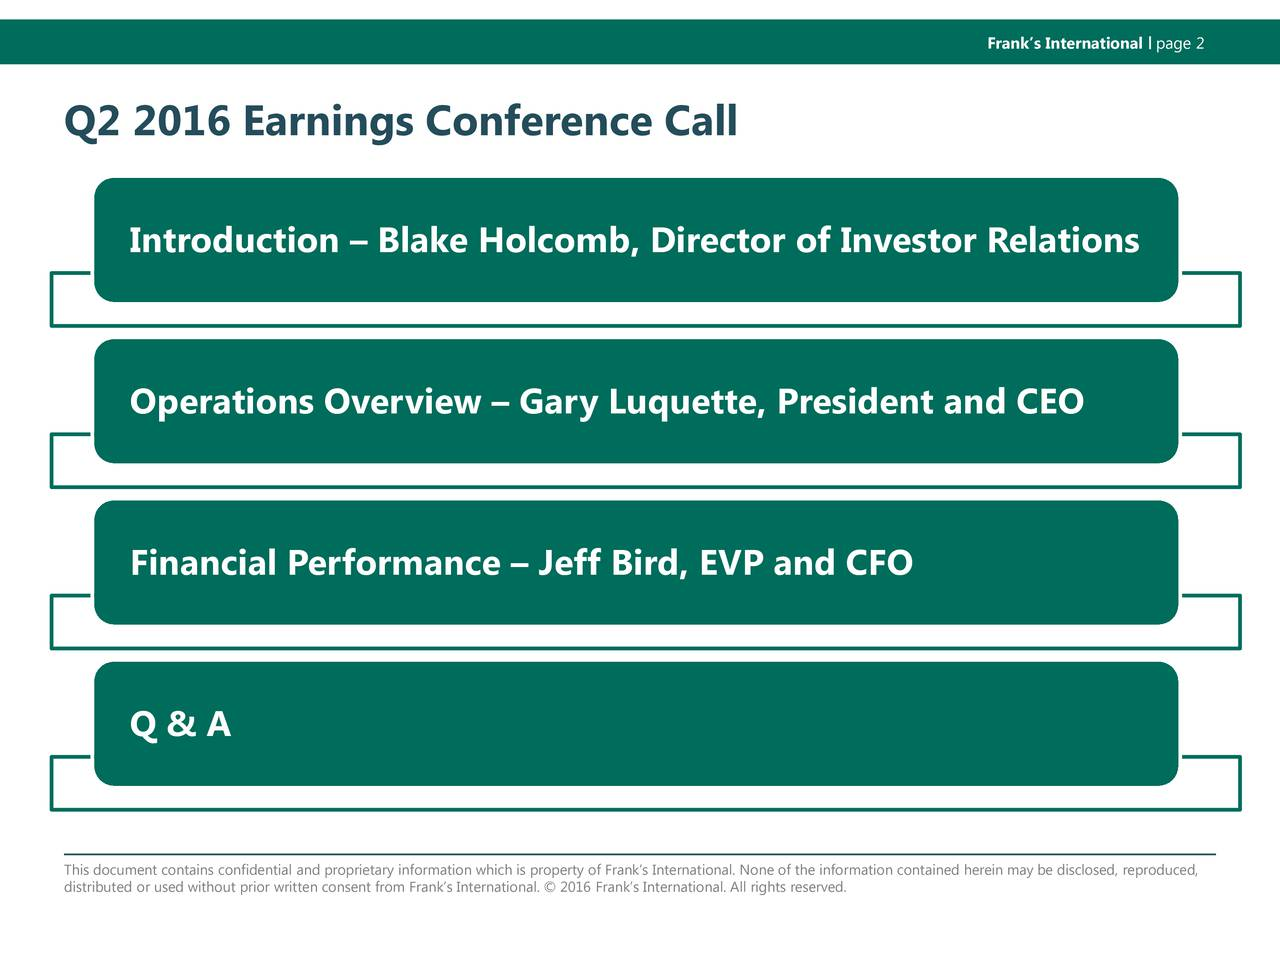 Q2 2016 Earnings Conference Call Introduction  Blake Holcomb, Director of Investor Relations Operations Overview  Gary Luquette, President and CEO Financial Performance  Jeff Bird, EVP and CFO Q & A This document contains confidential and proprietary information which is property of Franks International. None of the infor mation contained herein may be disclosed, reproduced, distributed or used without prior written consent from Franked.International.  2016 Franks International. All rights reserv